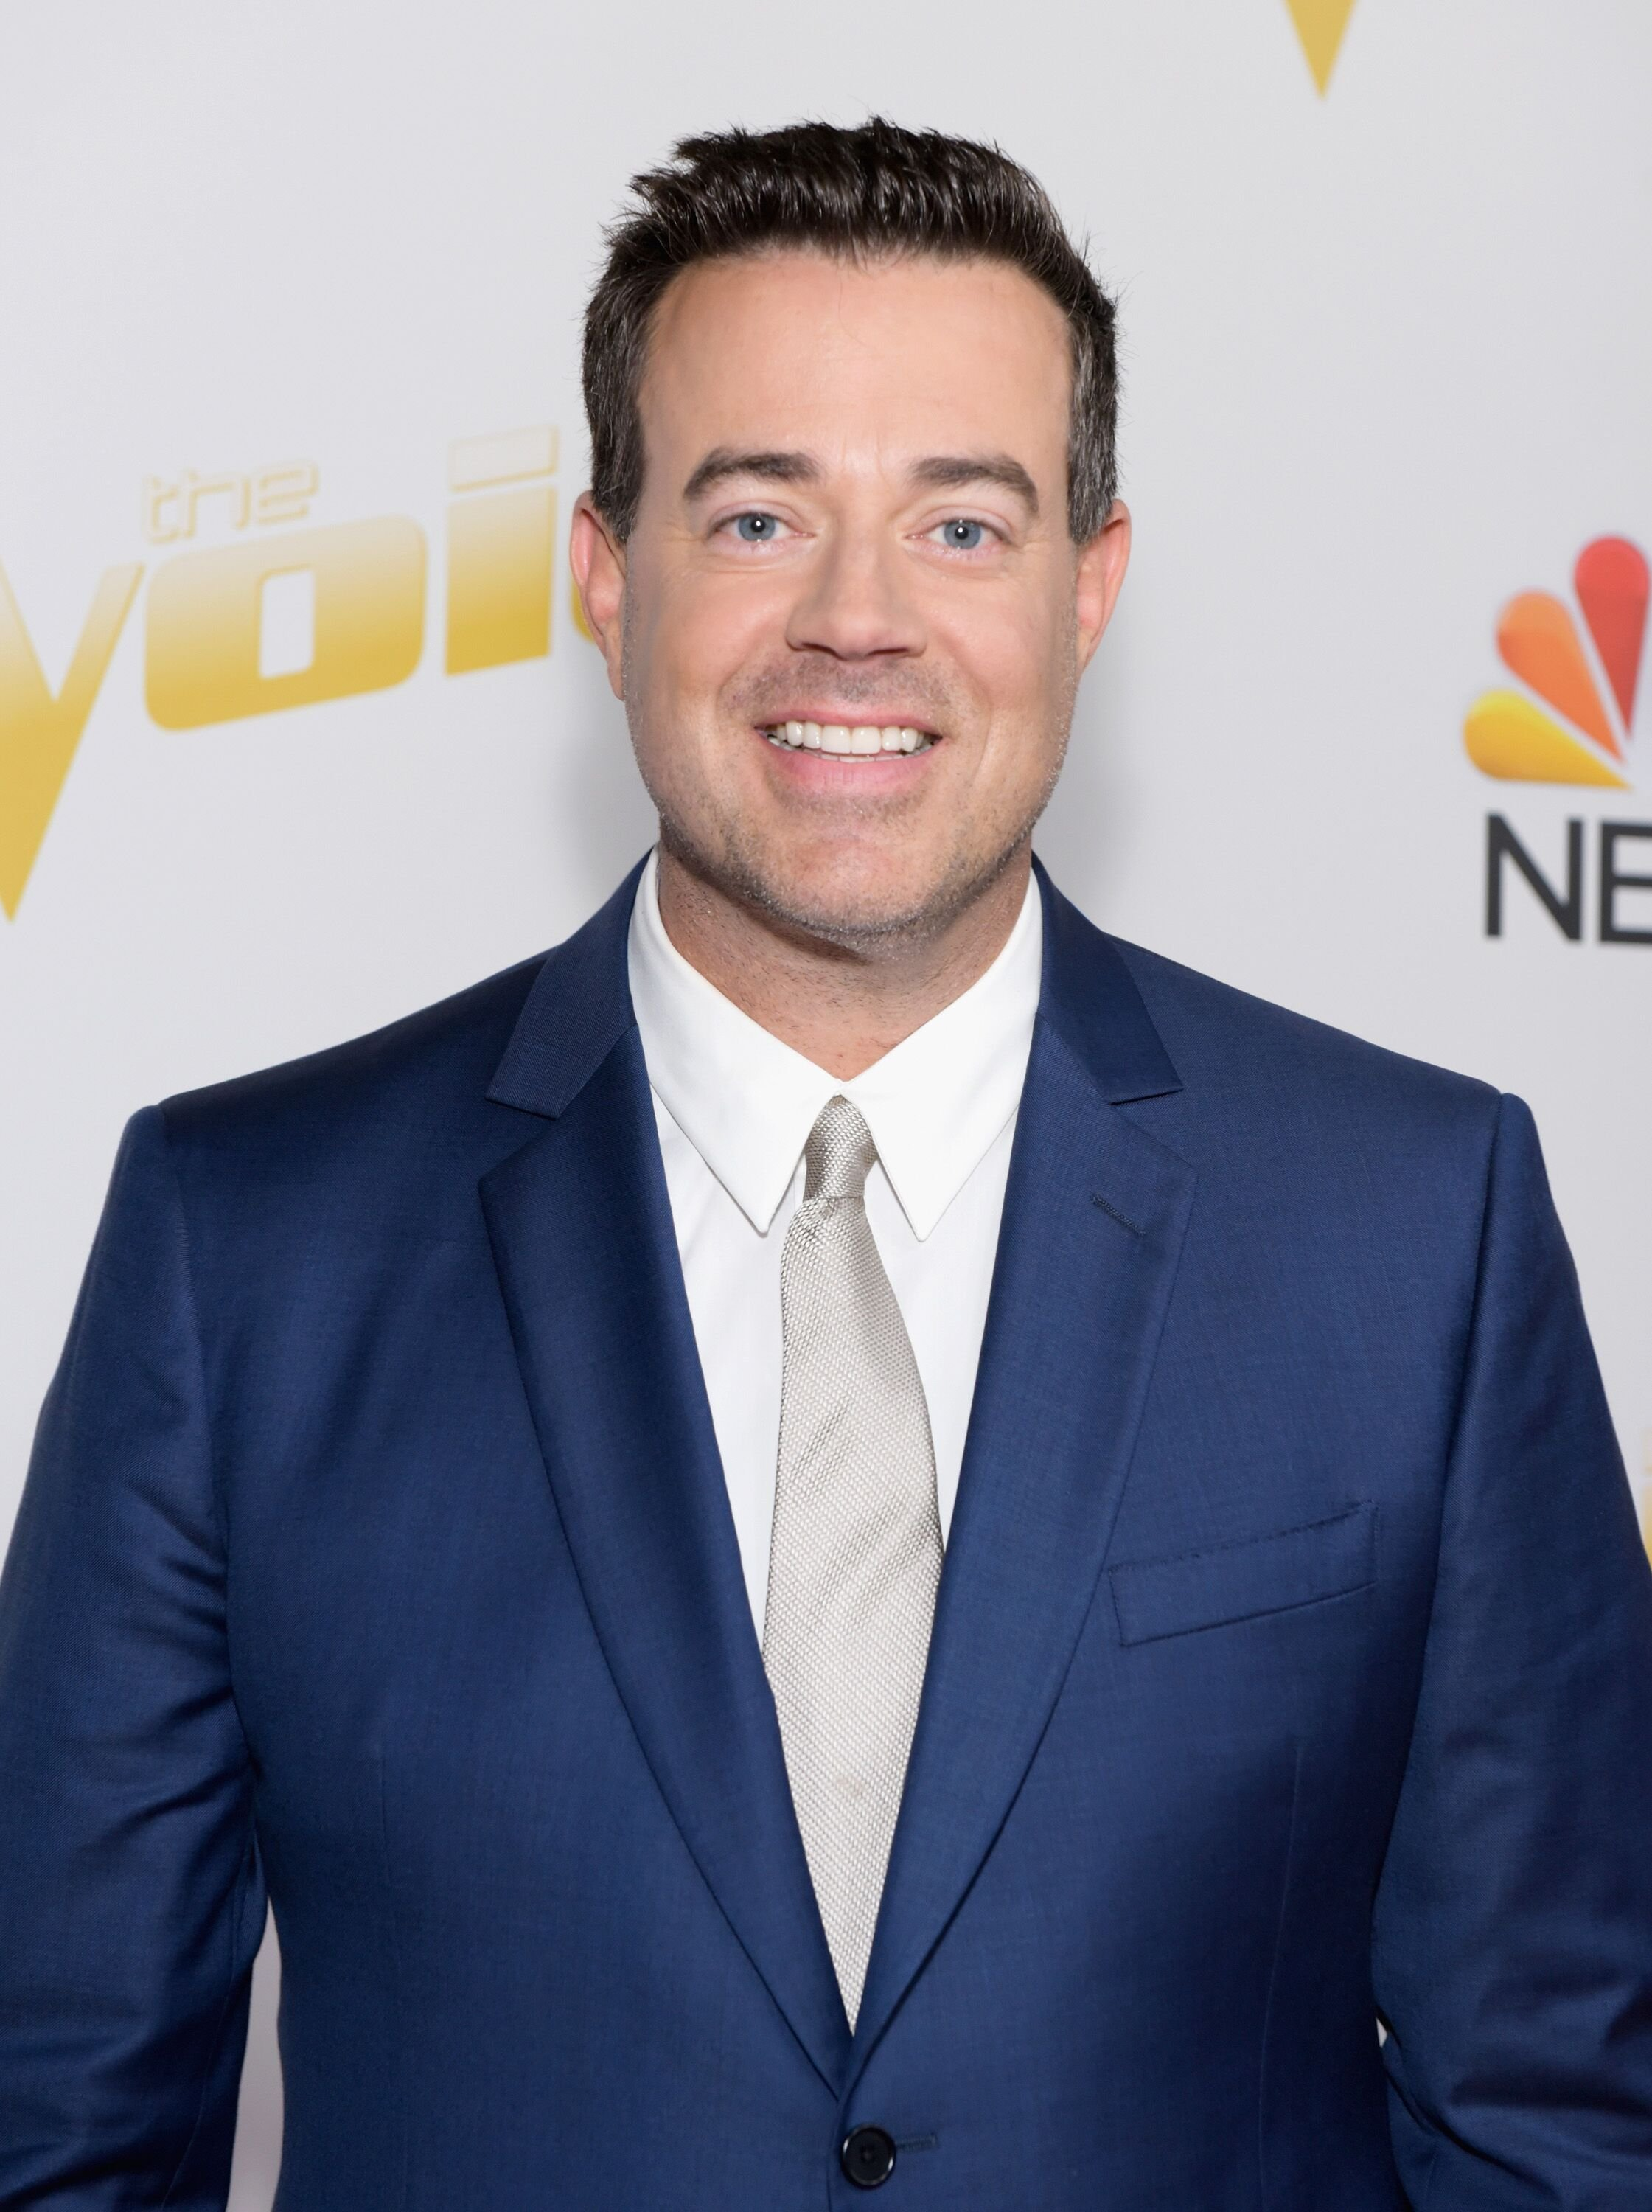 Carson Daly attends NBC's 'The Voice' Season 14 finale taping on May 21, 2018   Photo: Getty Images